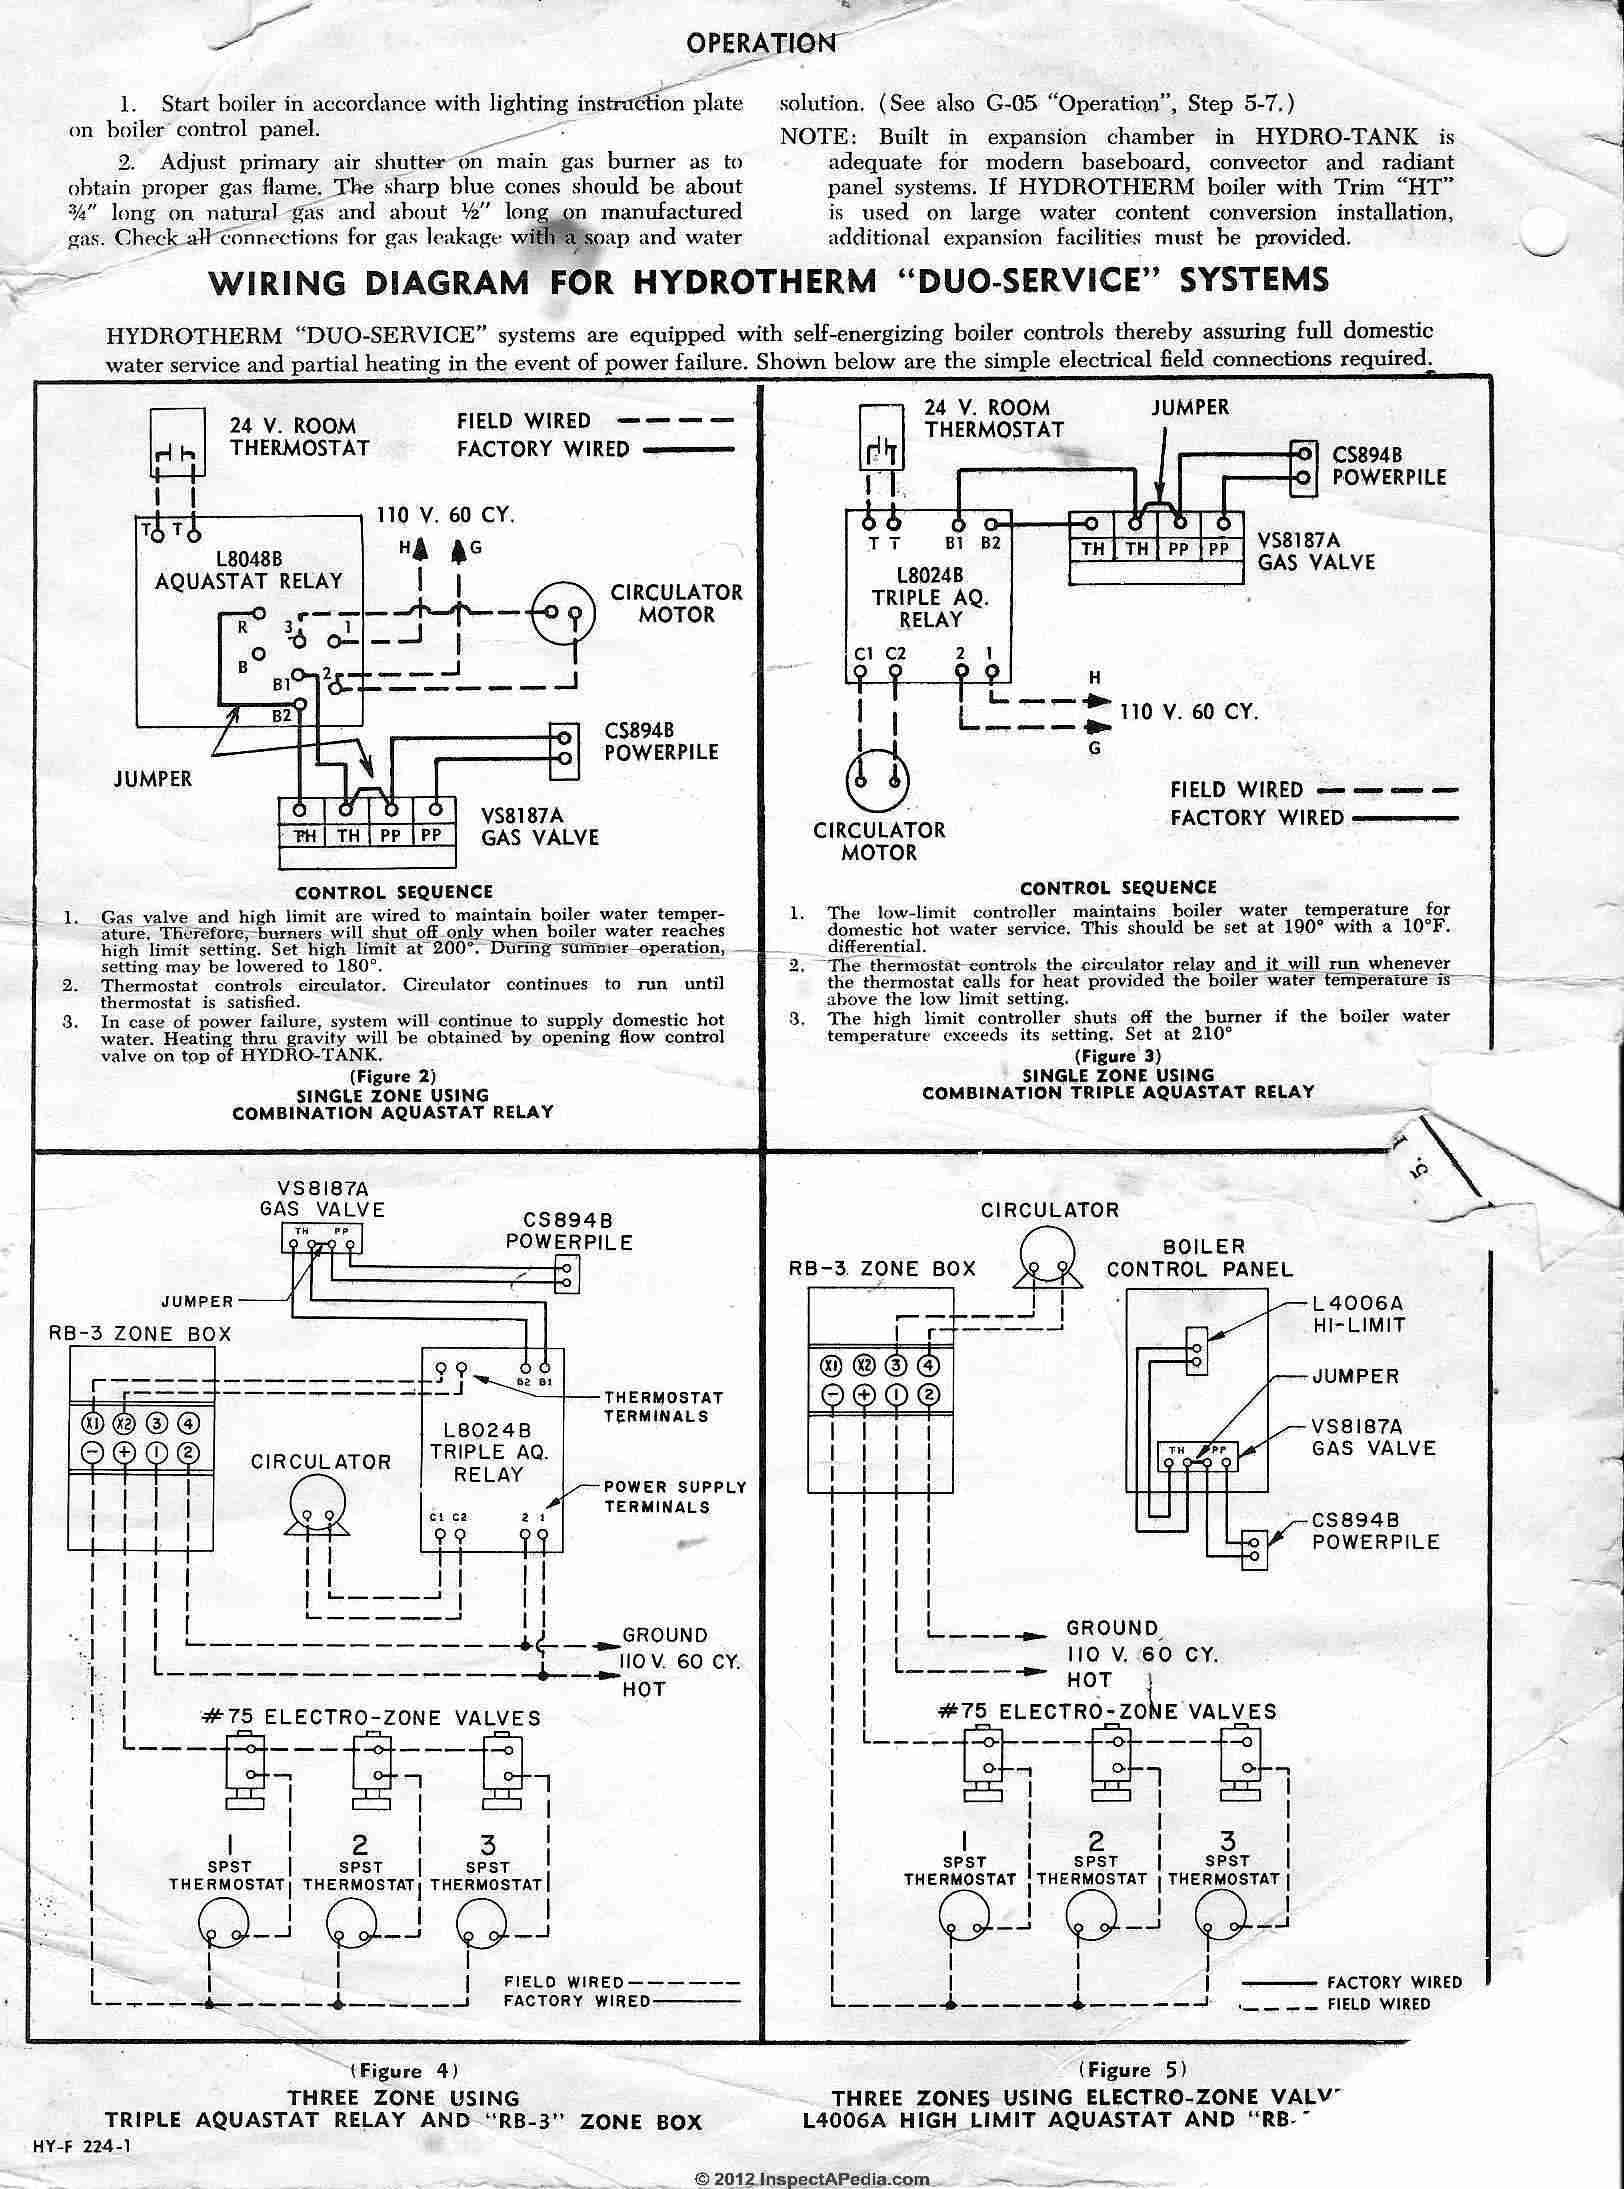 L8024B_Aquastat_0422_DJFcs honeywell l7224 wiring diagram honeywell l7224u aquastat wiring honeywell pressure switch wiring diagram at gsmportal.co